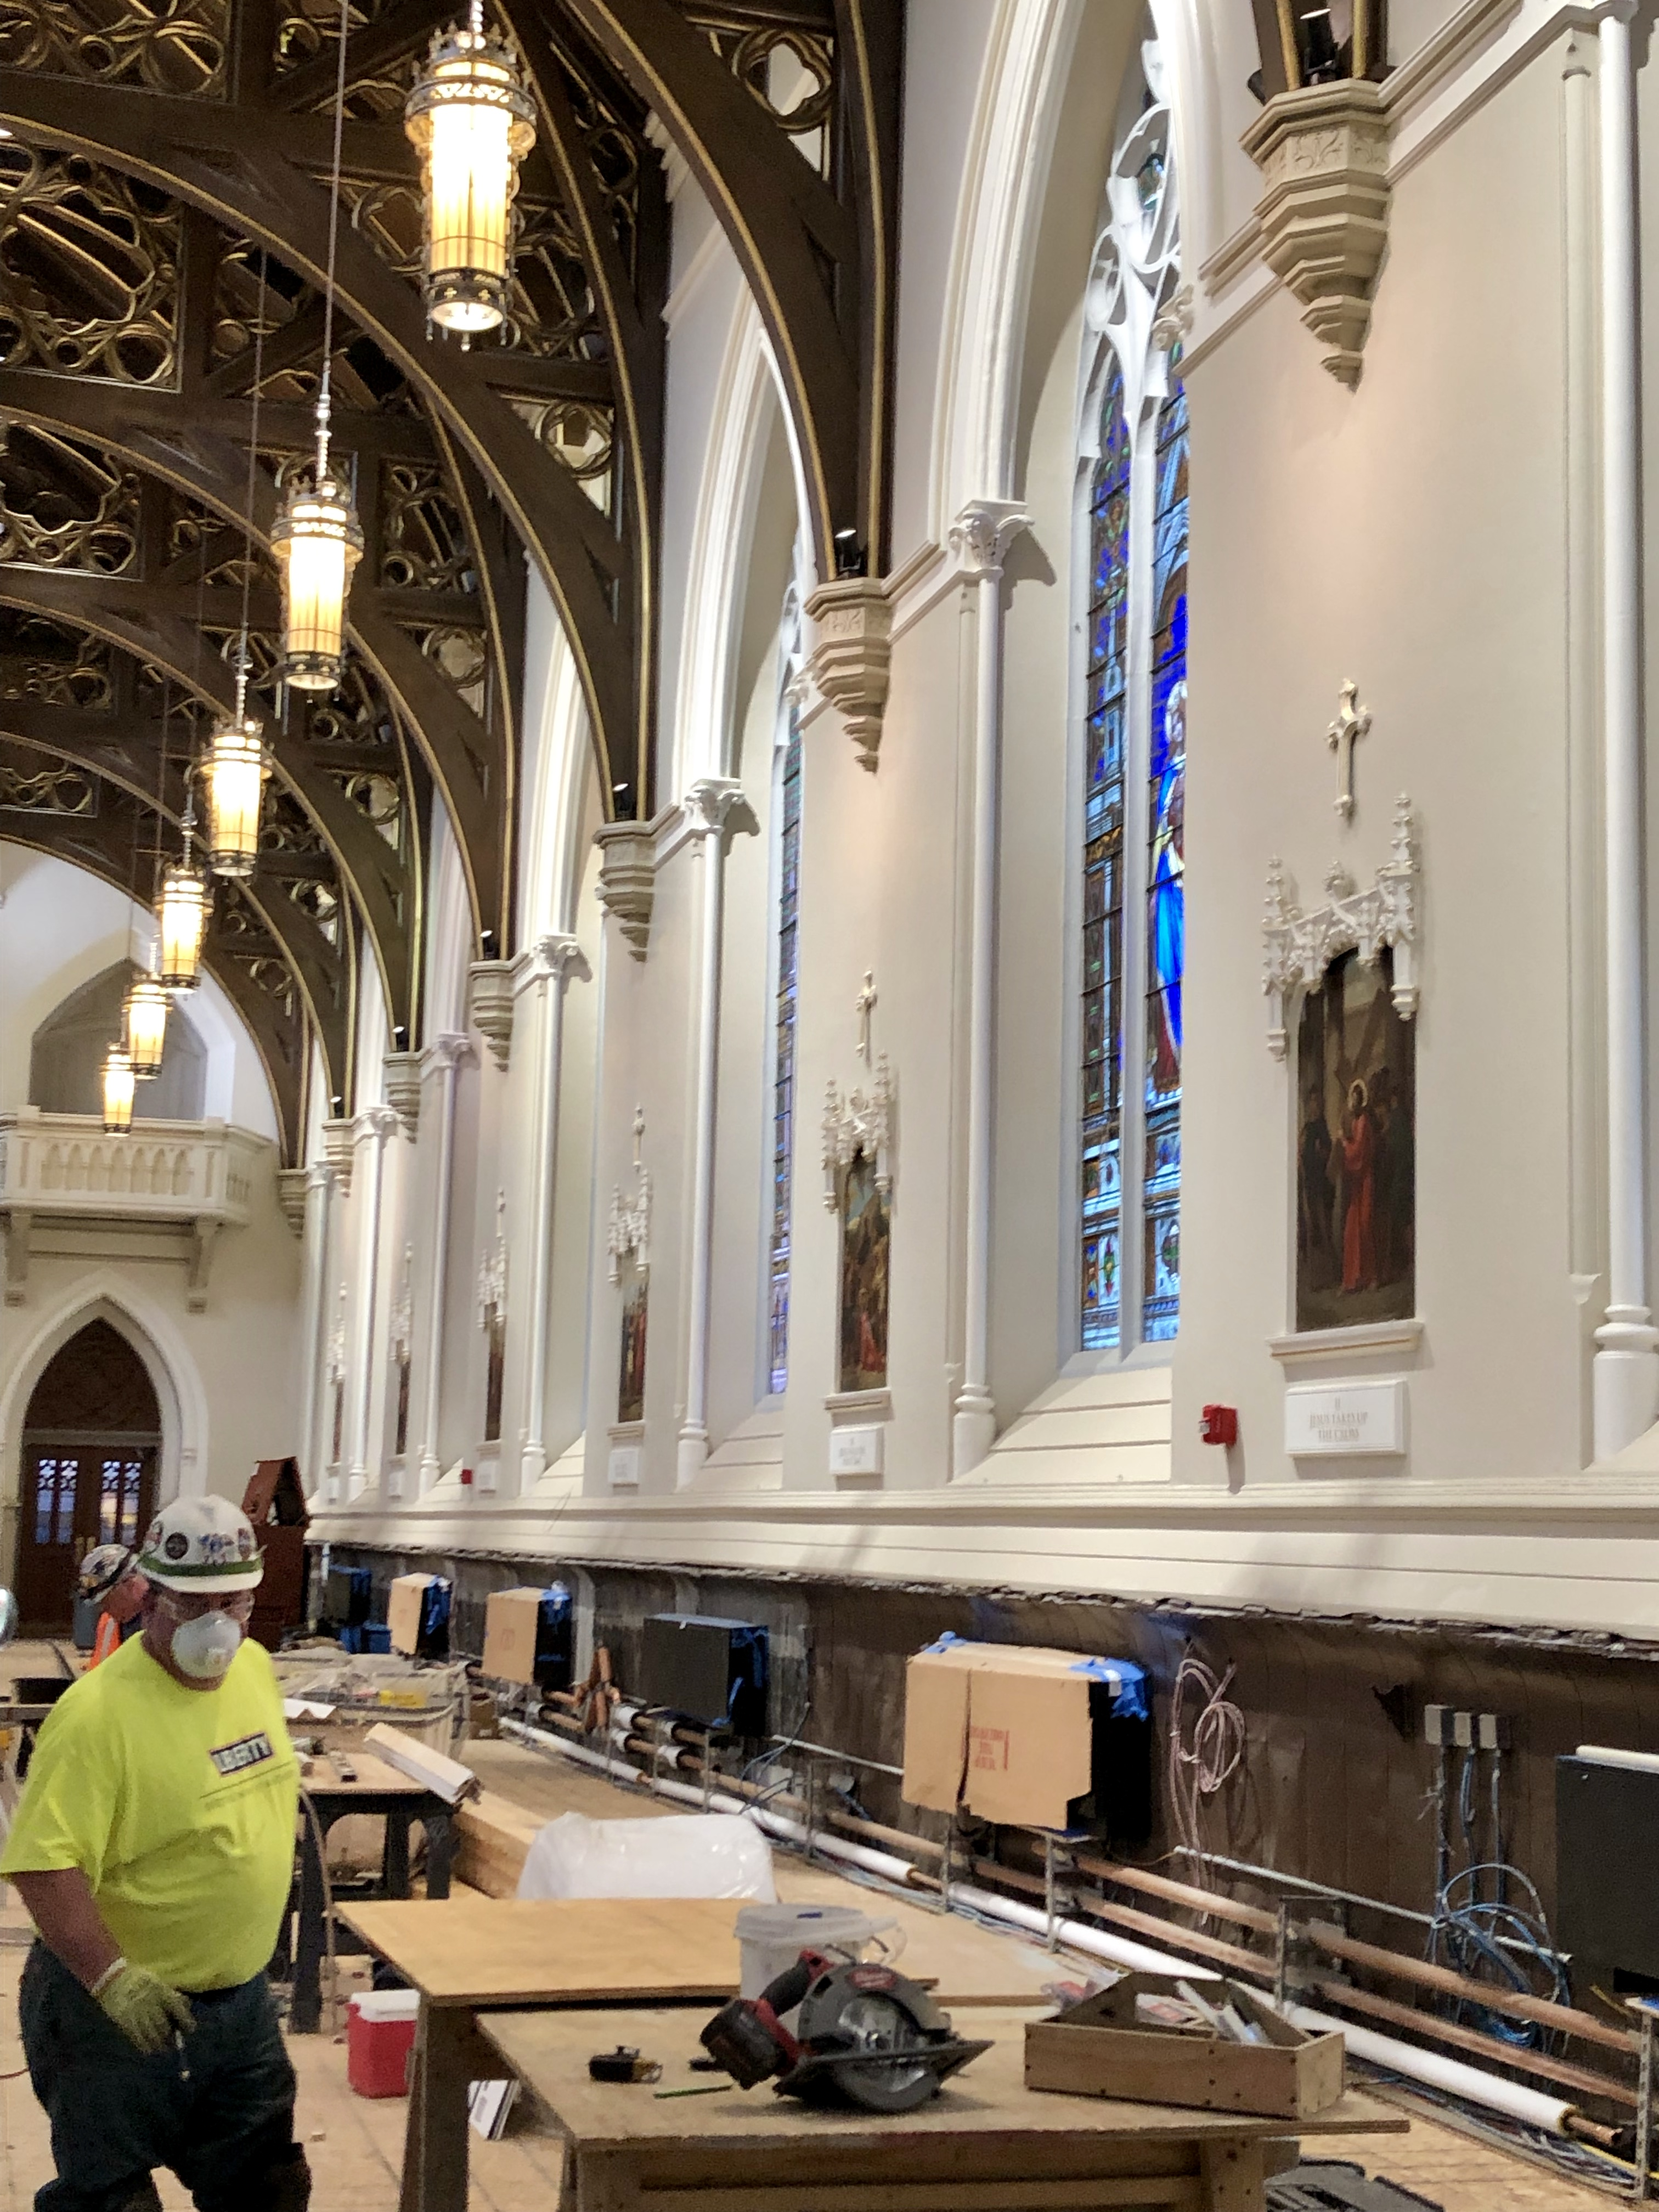 Work continues on restoring and upgrading the Cathedral under the direction of Fr Kevin O'Leary, Cathedral Rector.  Fr O'Leary gave tour of the extensive and much needed project to Fr. Diperri on Wednesday Dec 12